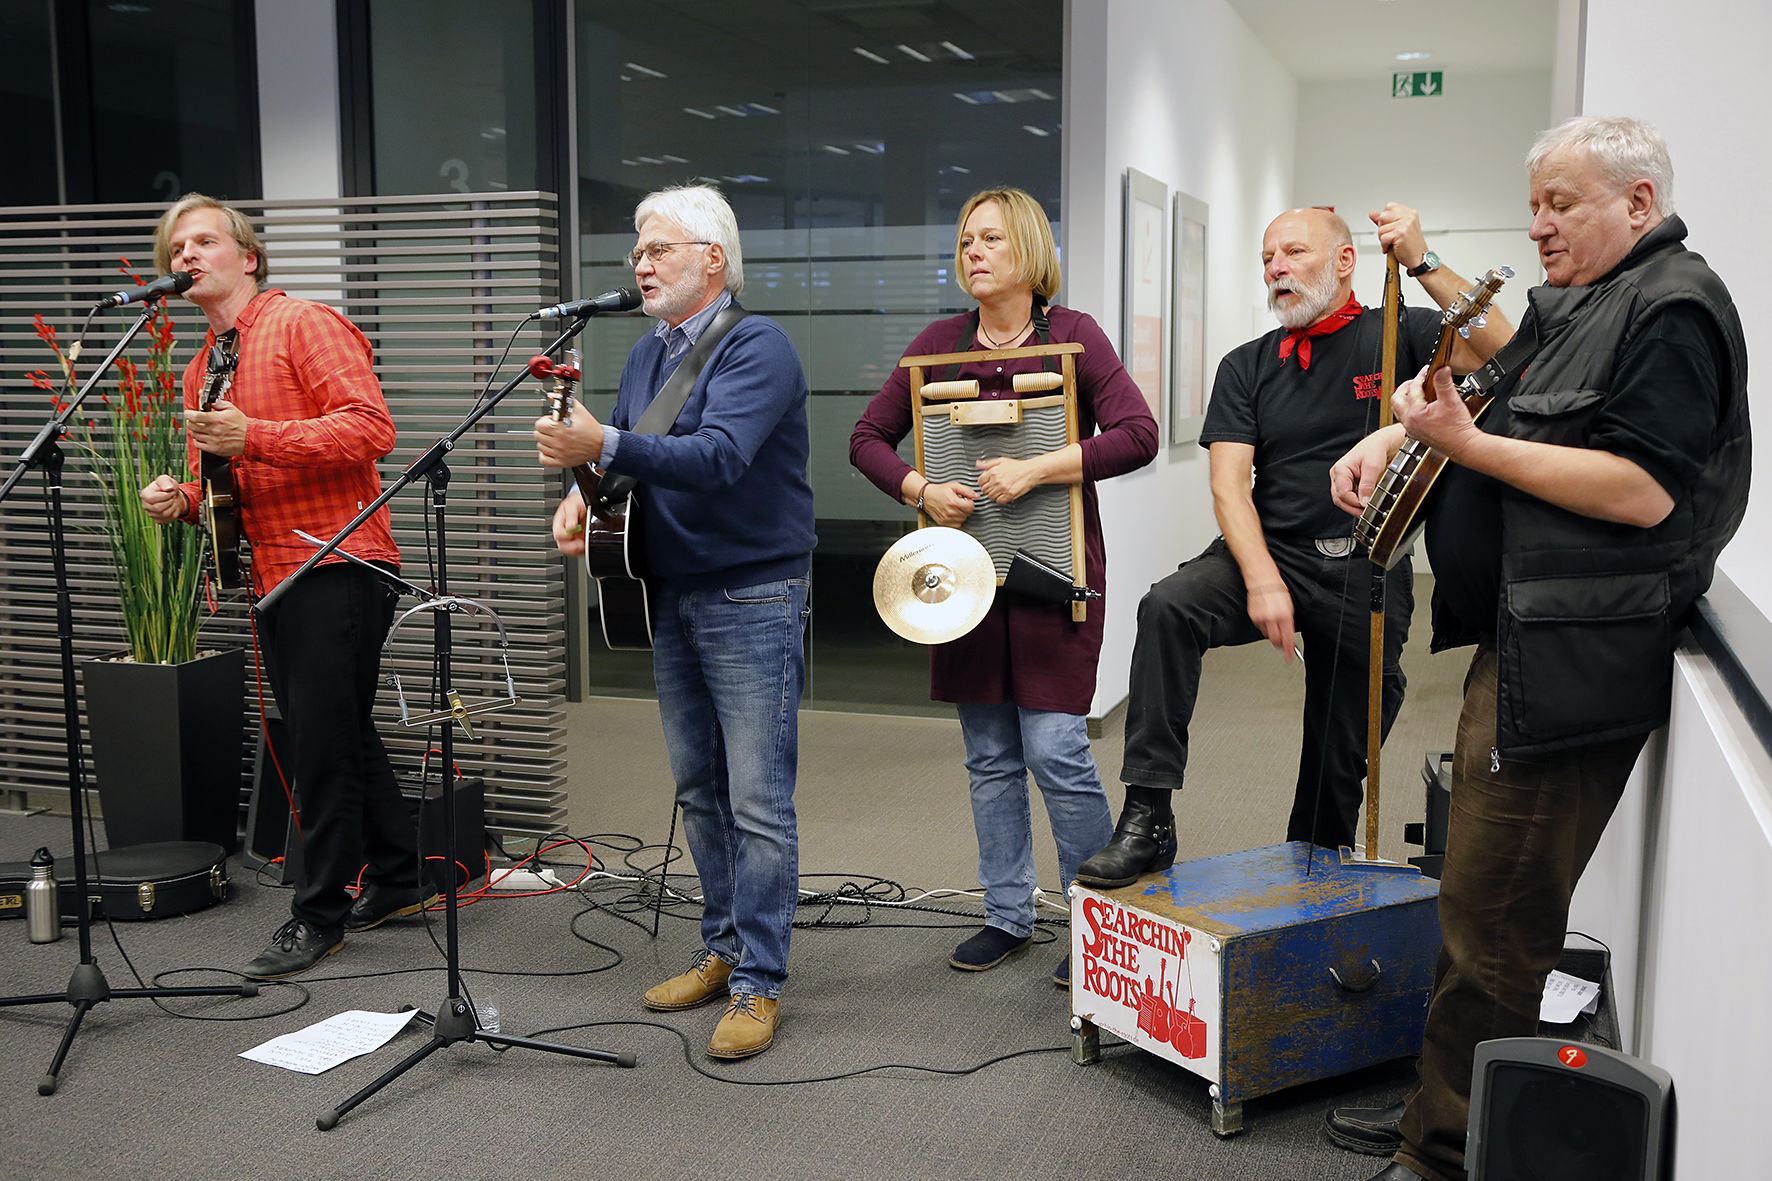 Searchin' the Roots in der Berliner Sparkasse, Foto: Antonia Richter